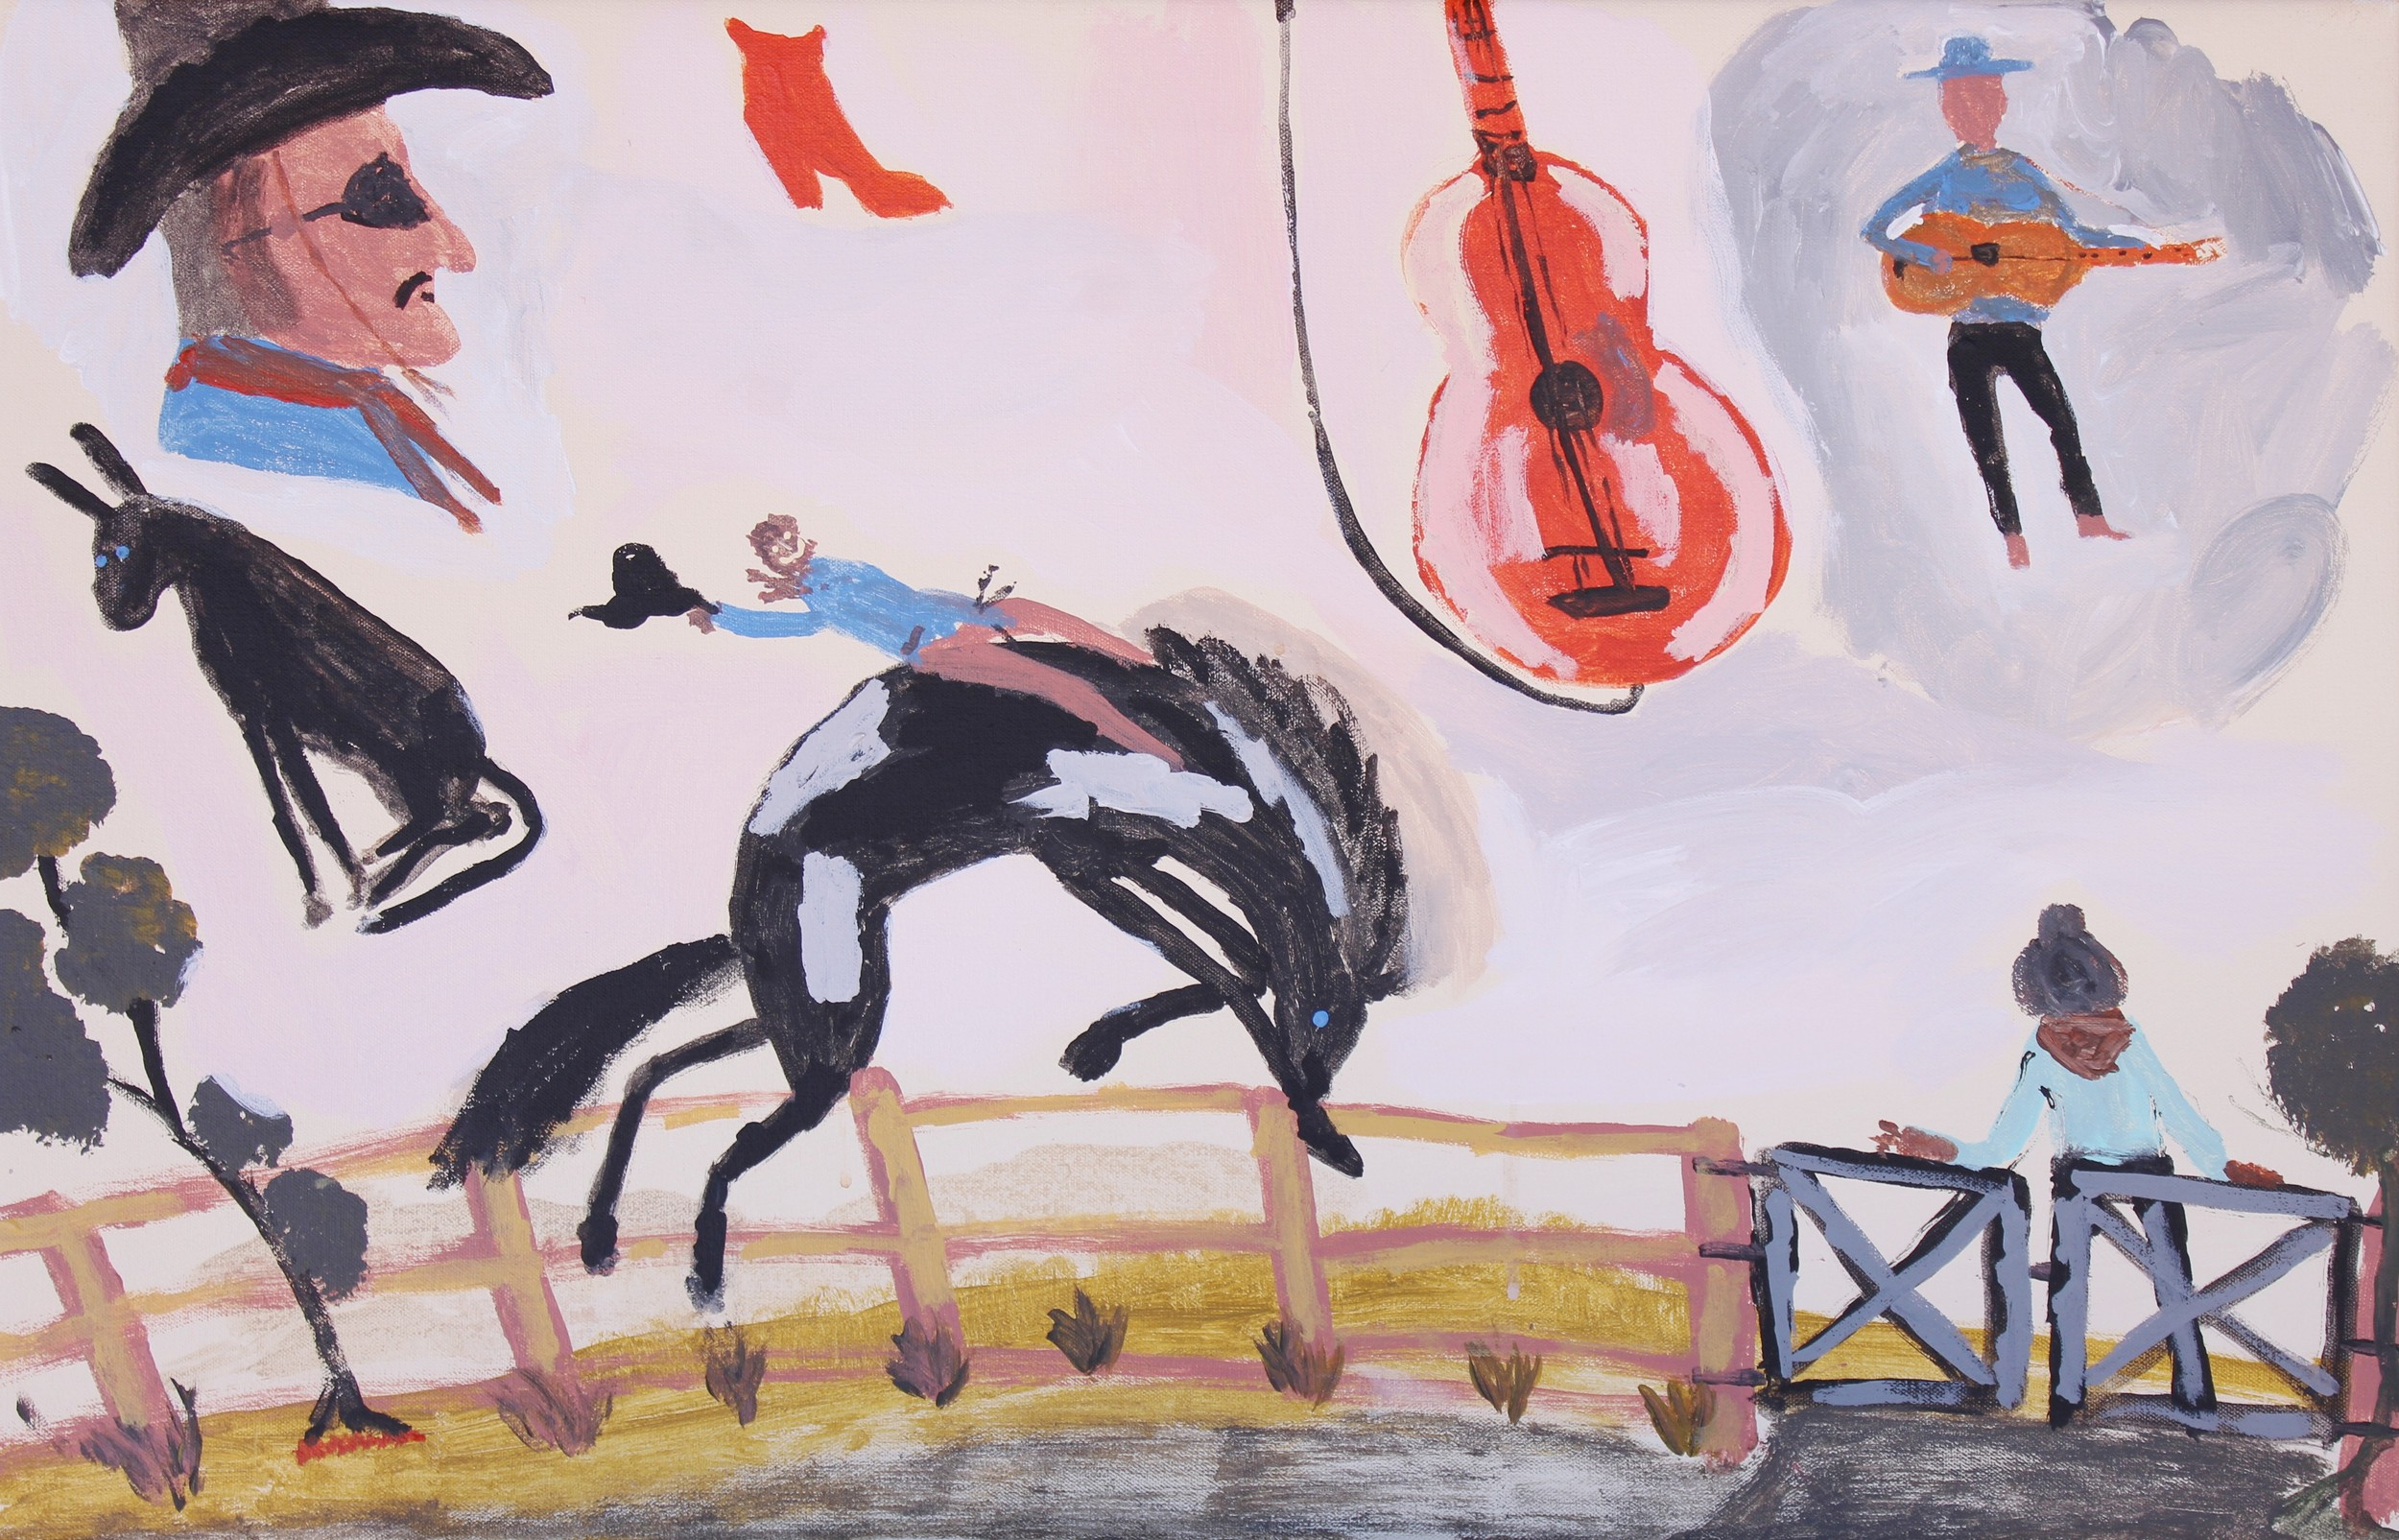 """Jimmy Pompey  Cowboy Story  Acrylic on canvas 18"""" x 28"""" (46 x 71 cm) Iwantja Arts Catalog #584-15   Price Available upon Request"""